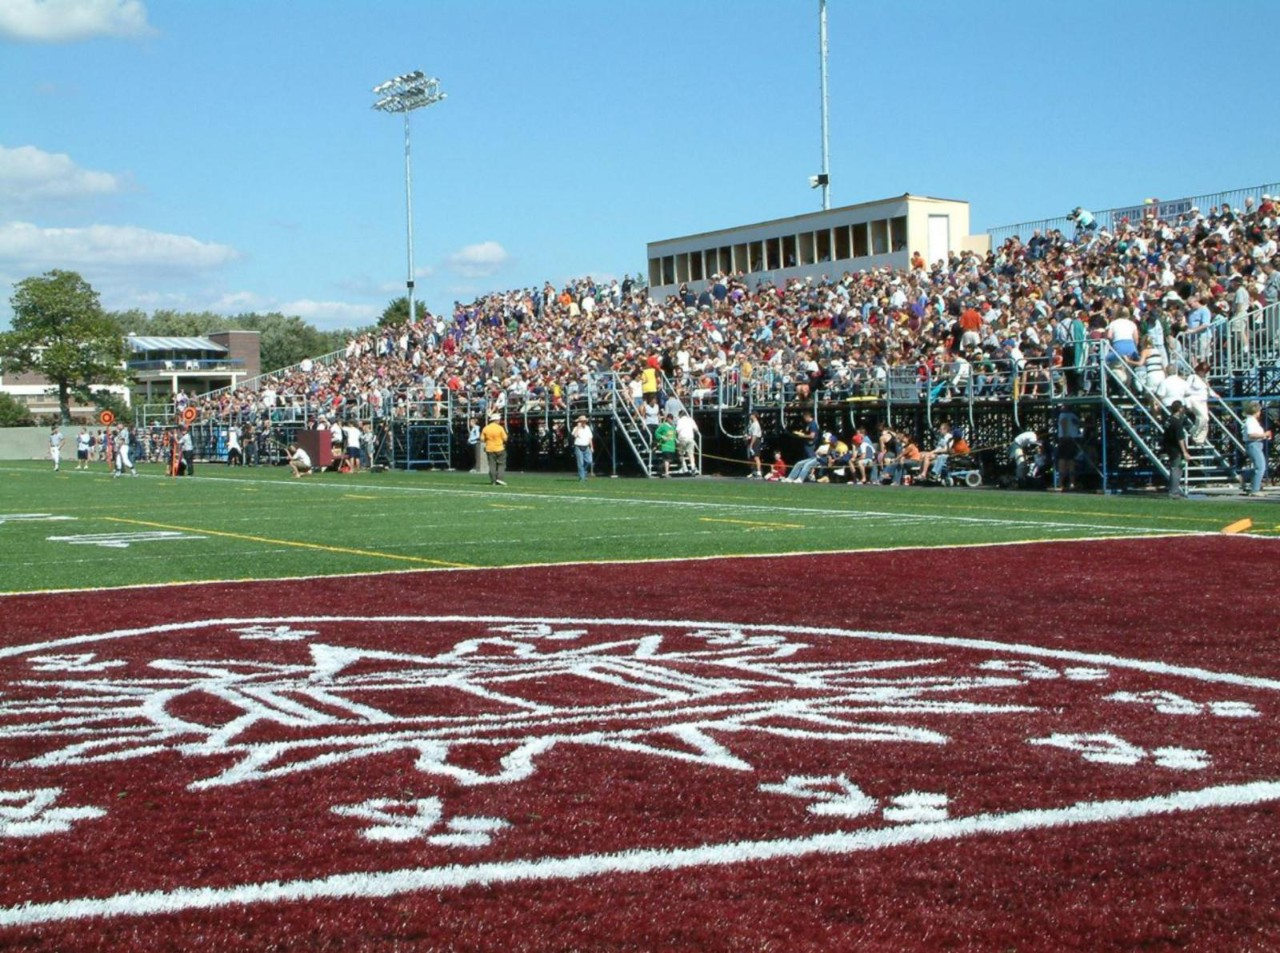 Home-opener football game and inauguration of the new field and temporary stadium